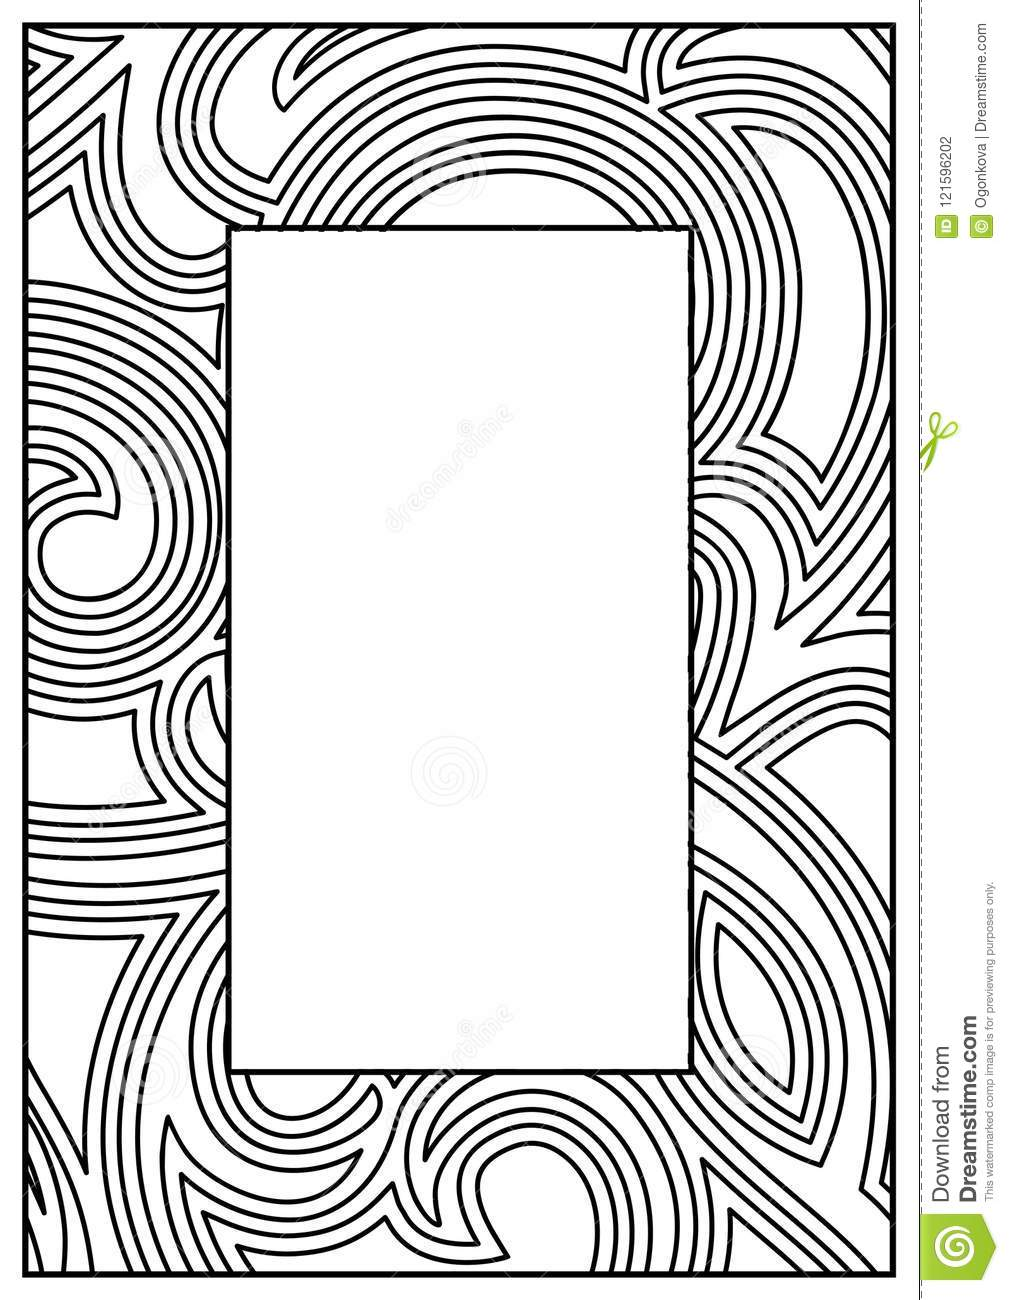 Frame Border Design Template. Black And White Decorative Vector ...